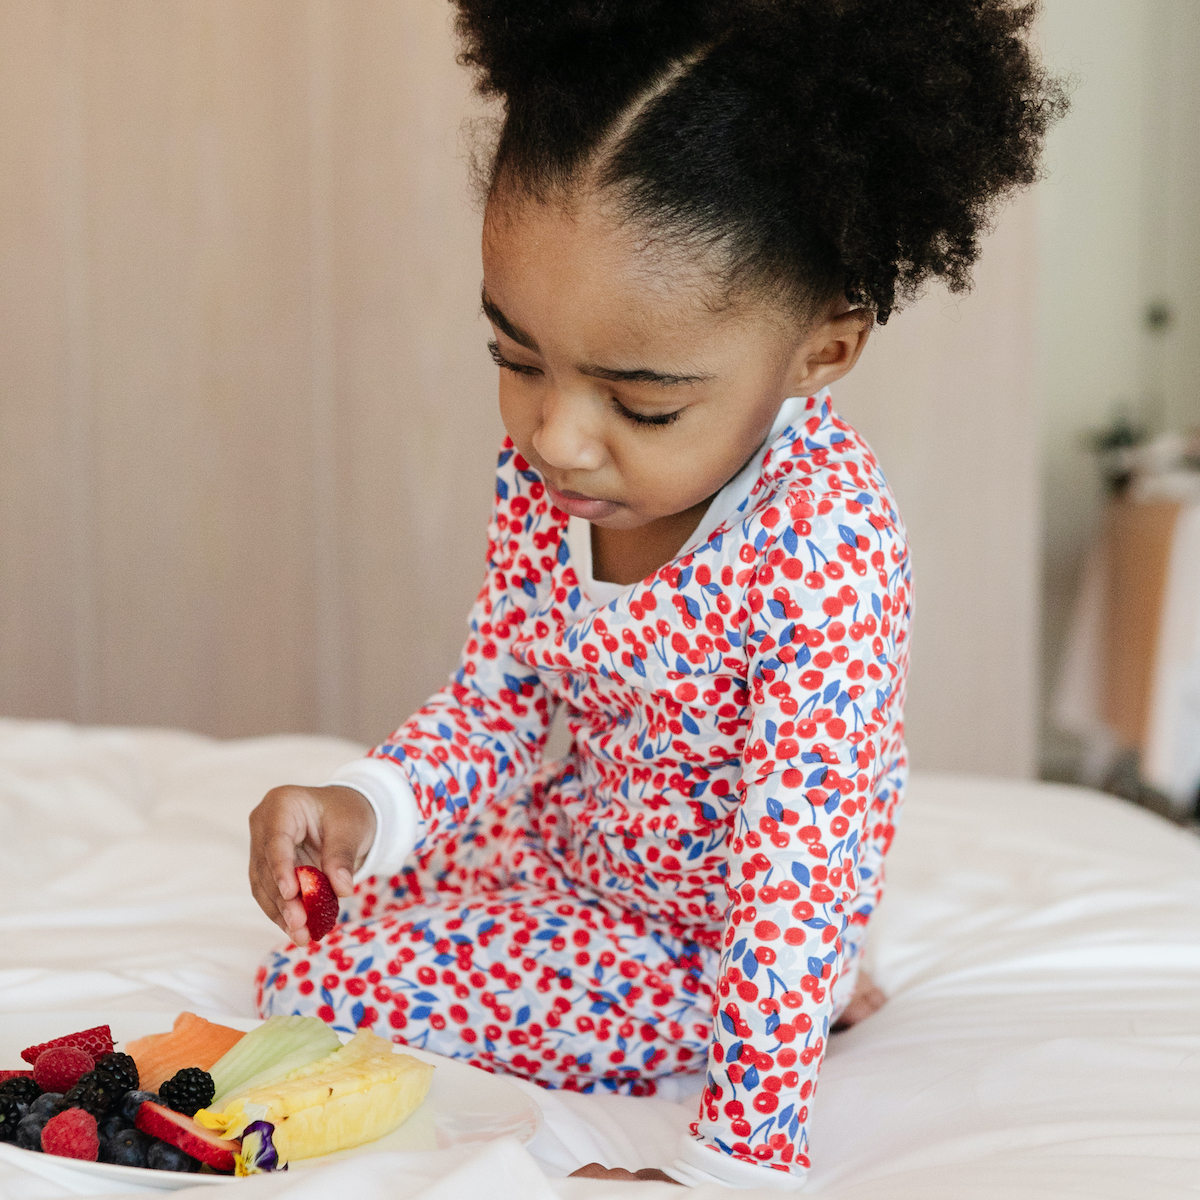 A little girl wearing 12 | 12 pajama set and eating a plate of fruit on a bed.